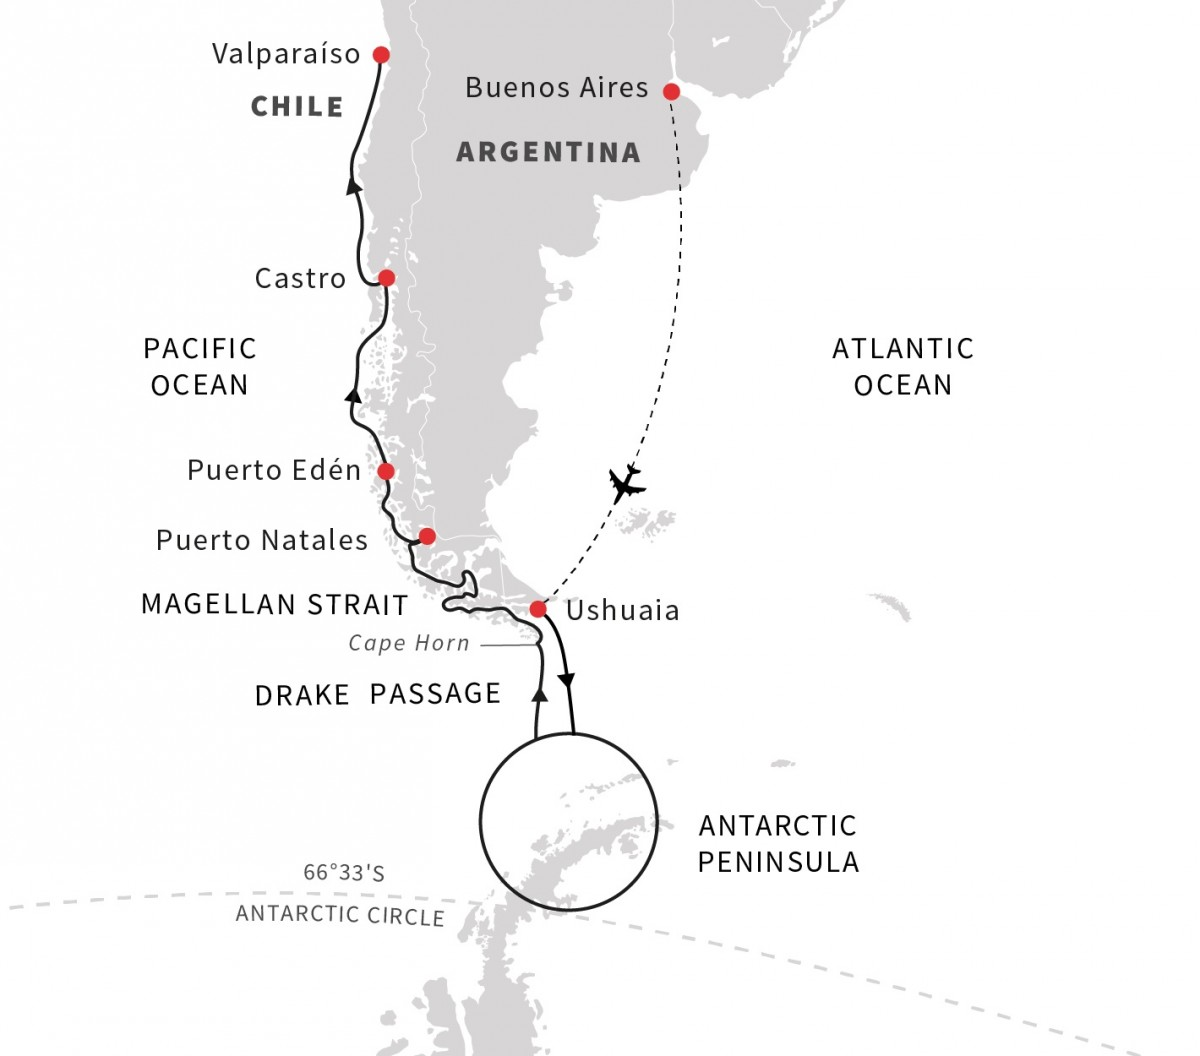 Patagonia to Antarctica Route Map